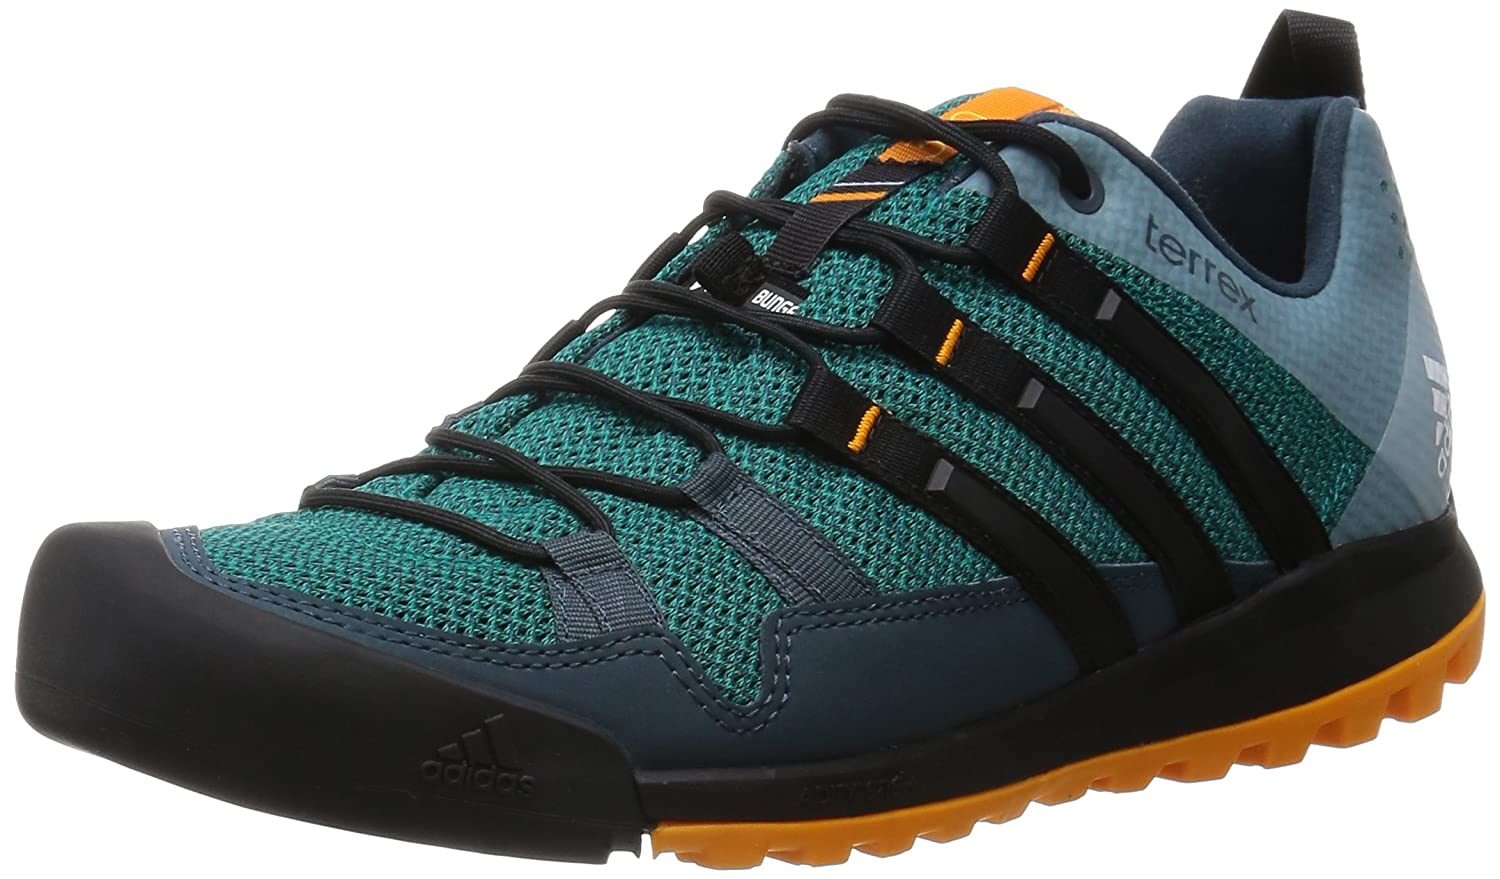 Adidas Terrex Solo, Zapatillas de Running para Asfalto para Hombre, Verde (Green/Core Black/Orange), 43 1/3 EU 43 1/3 EU|Verde (Green/Core Black/Orange)